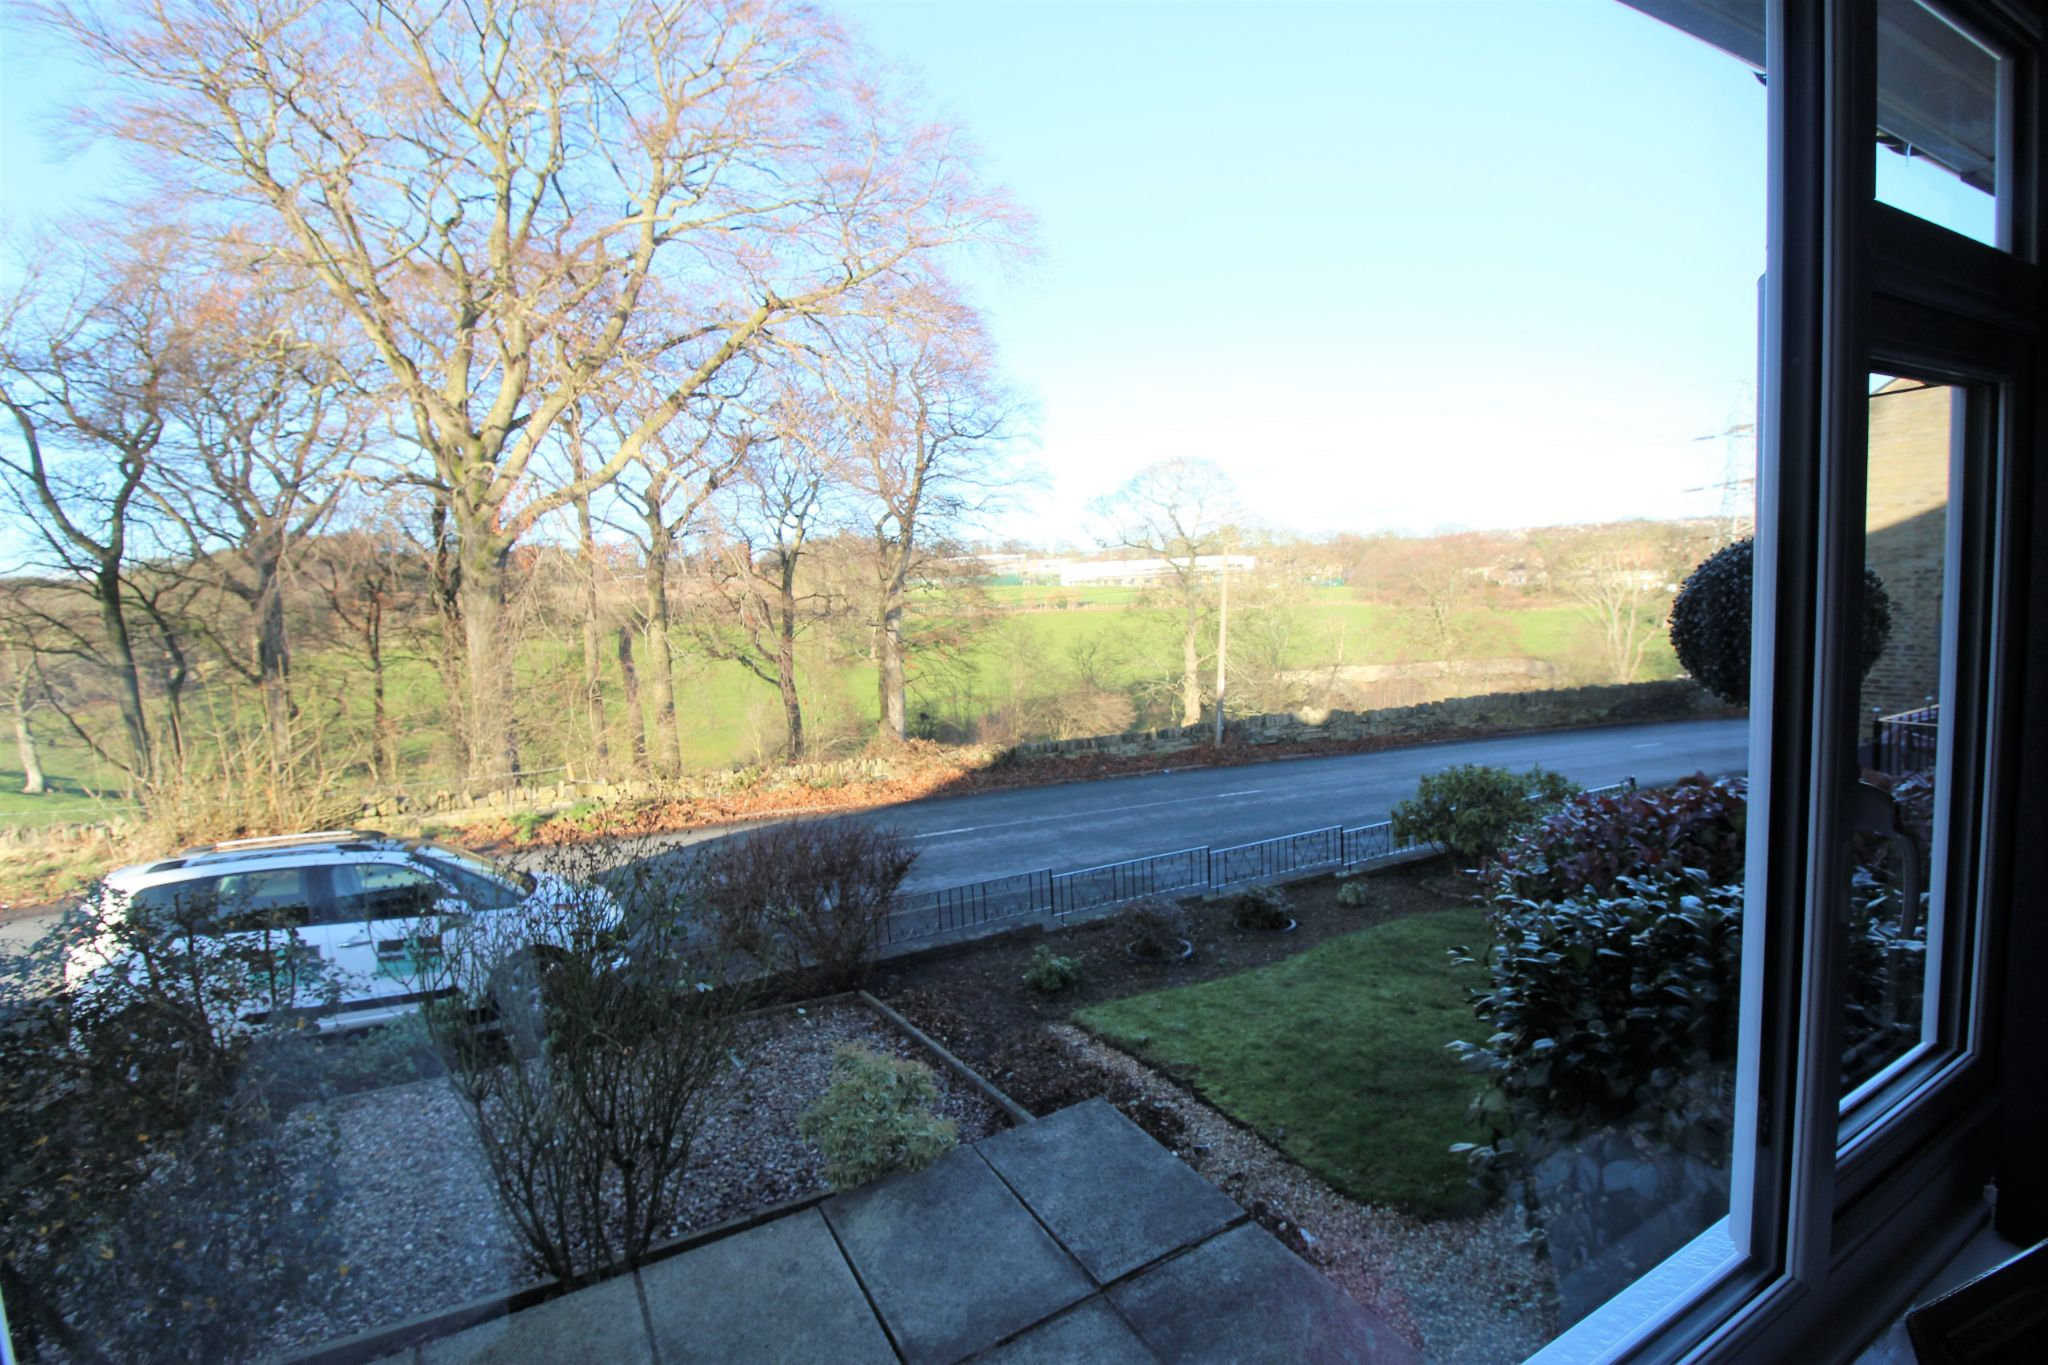 4 bedroom semi-detached bungalow SSTC in Brighouse - View from bedroom 1